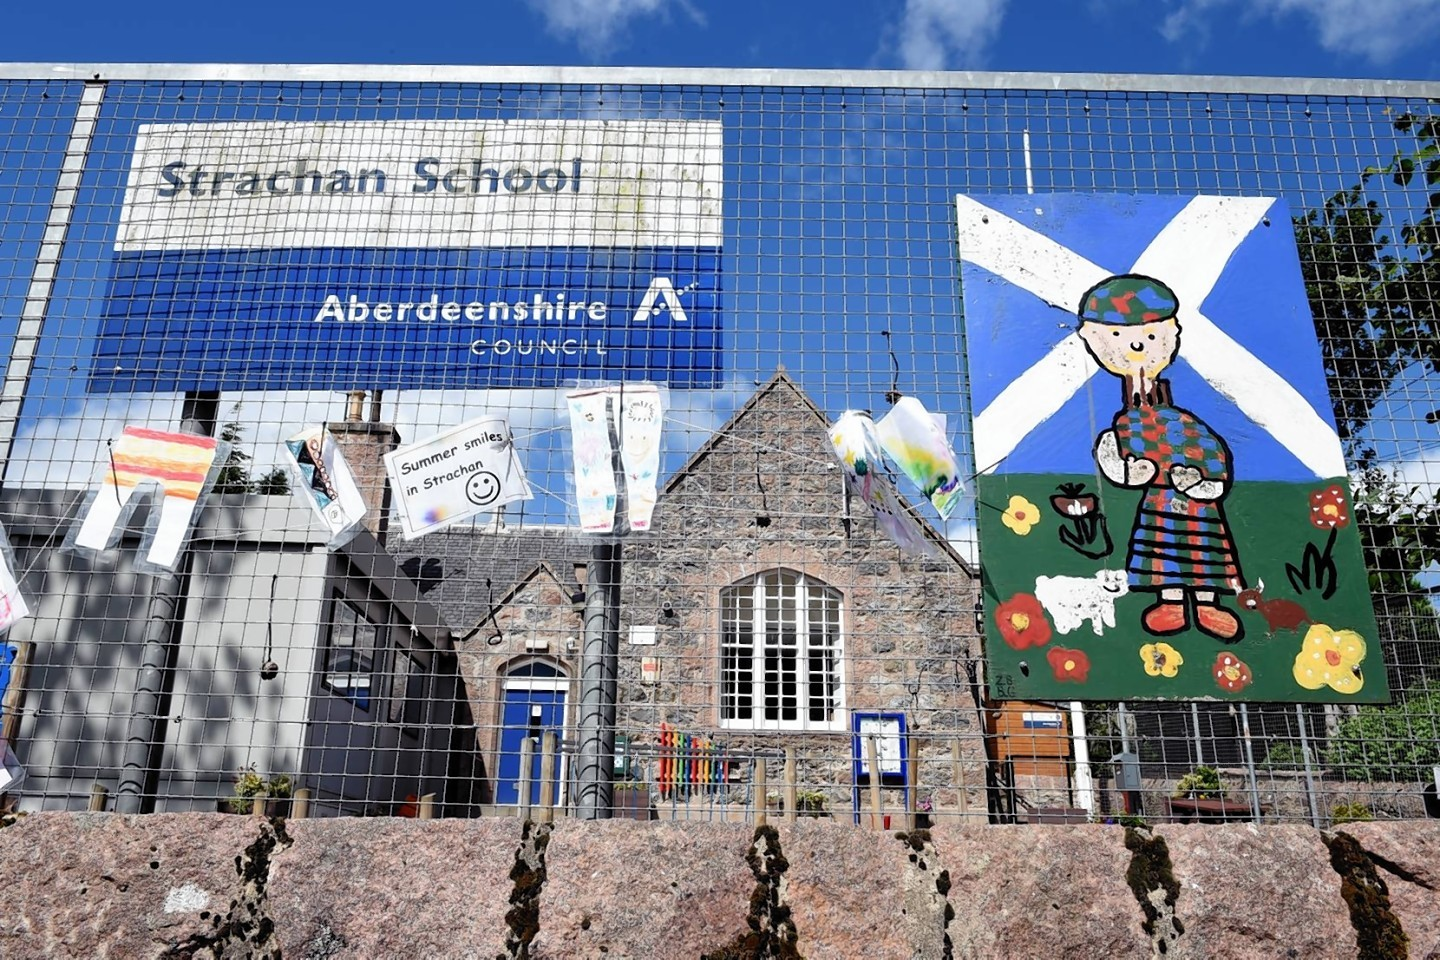 Strachan School, near Banchory, has been mothballed